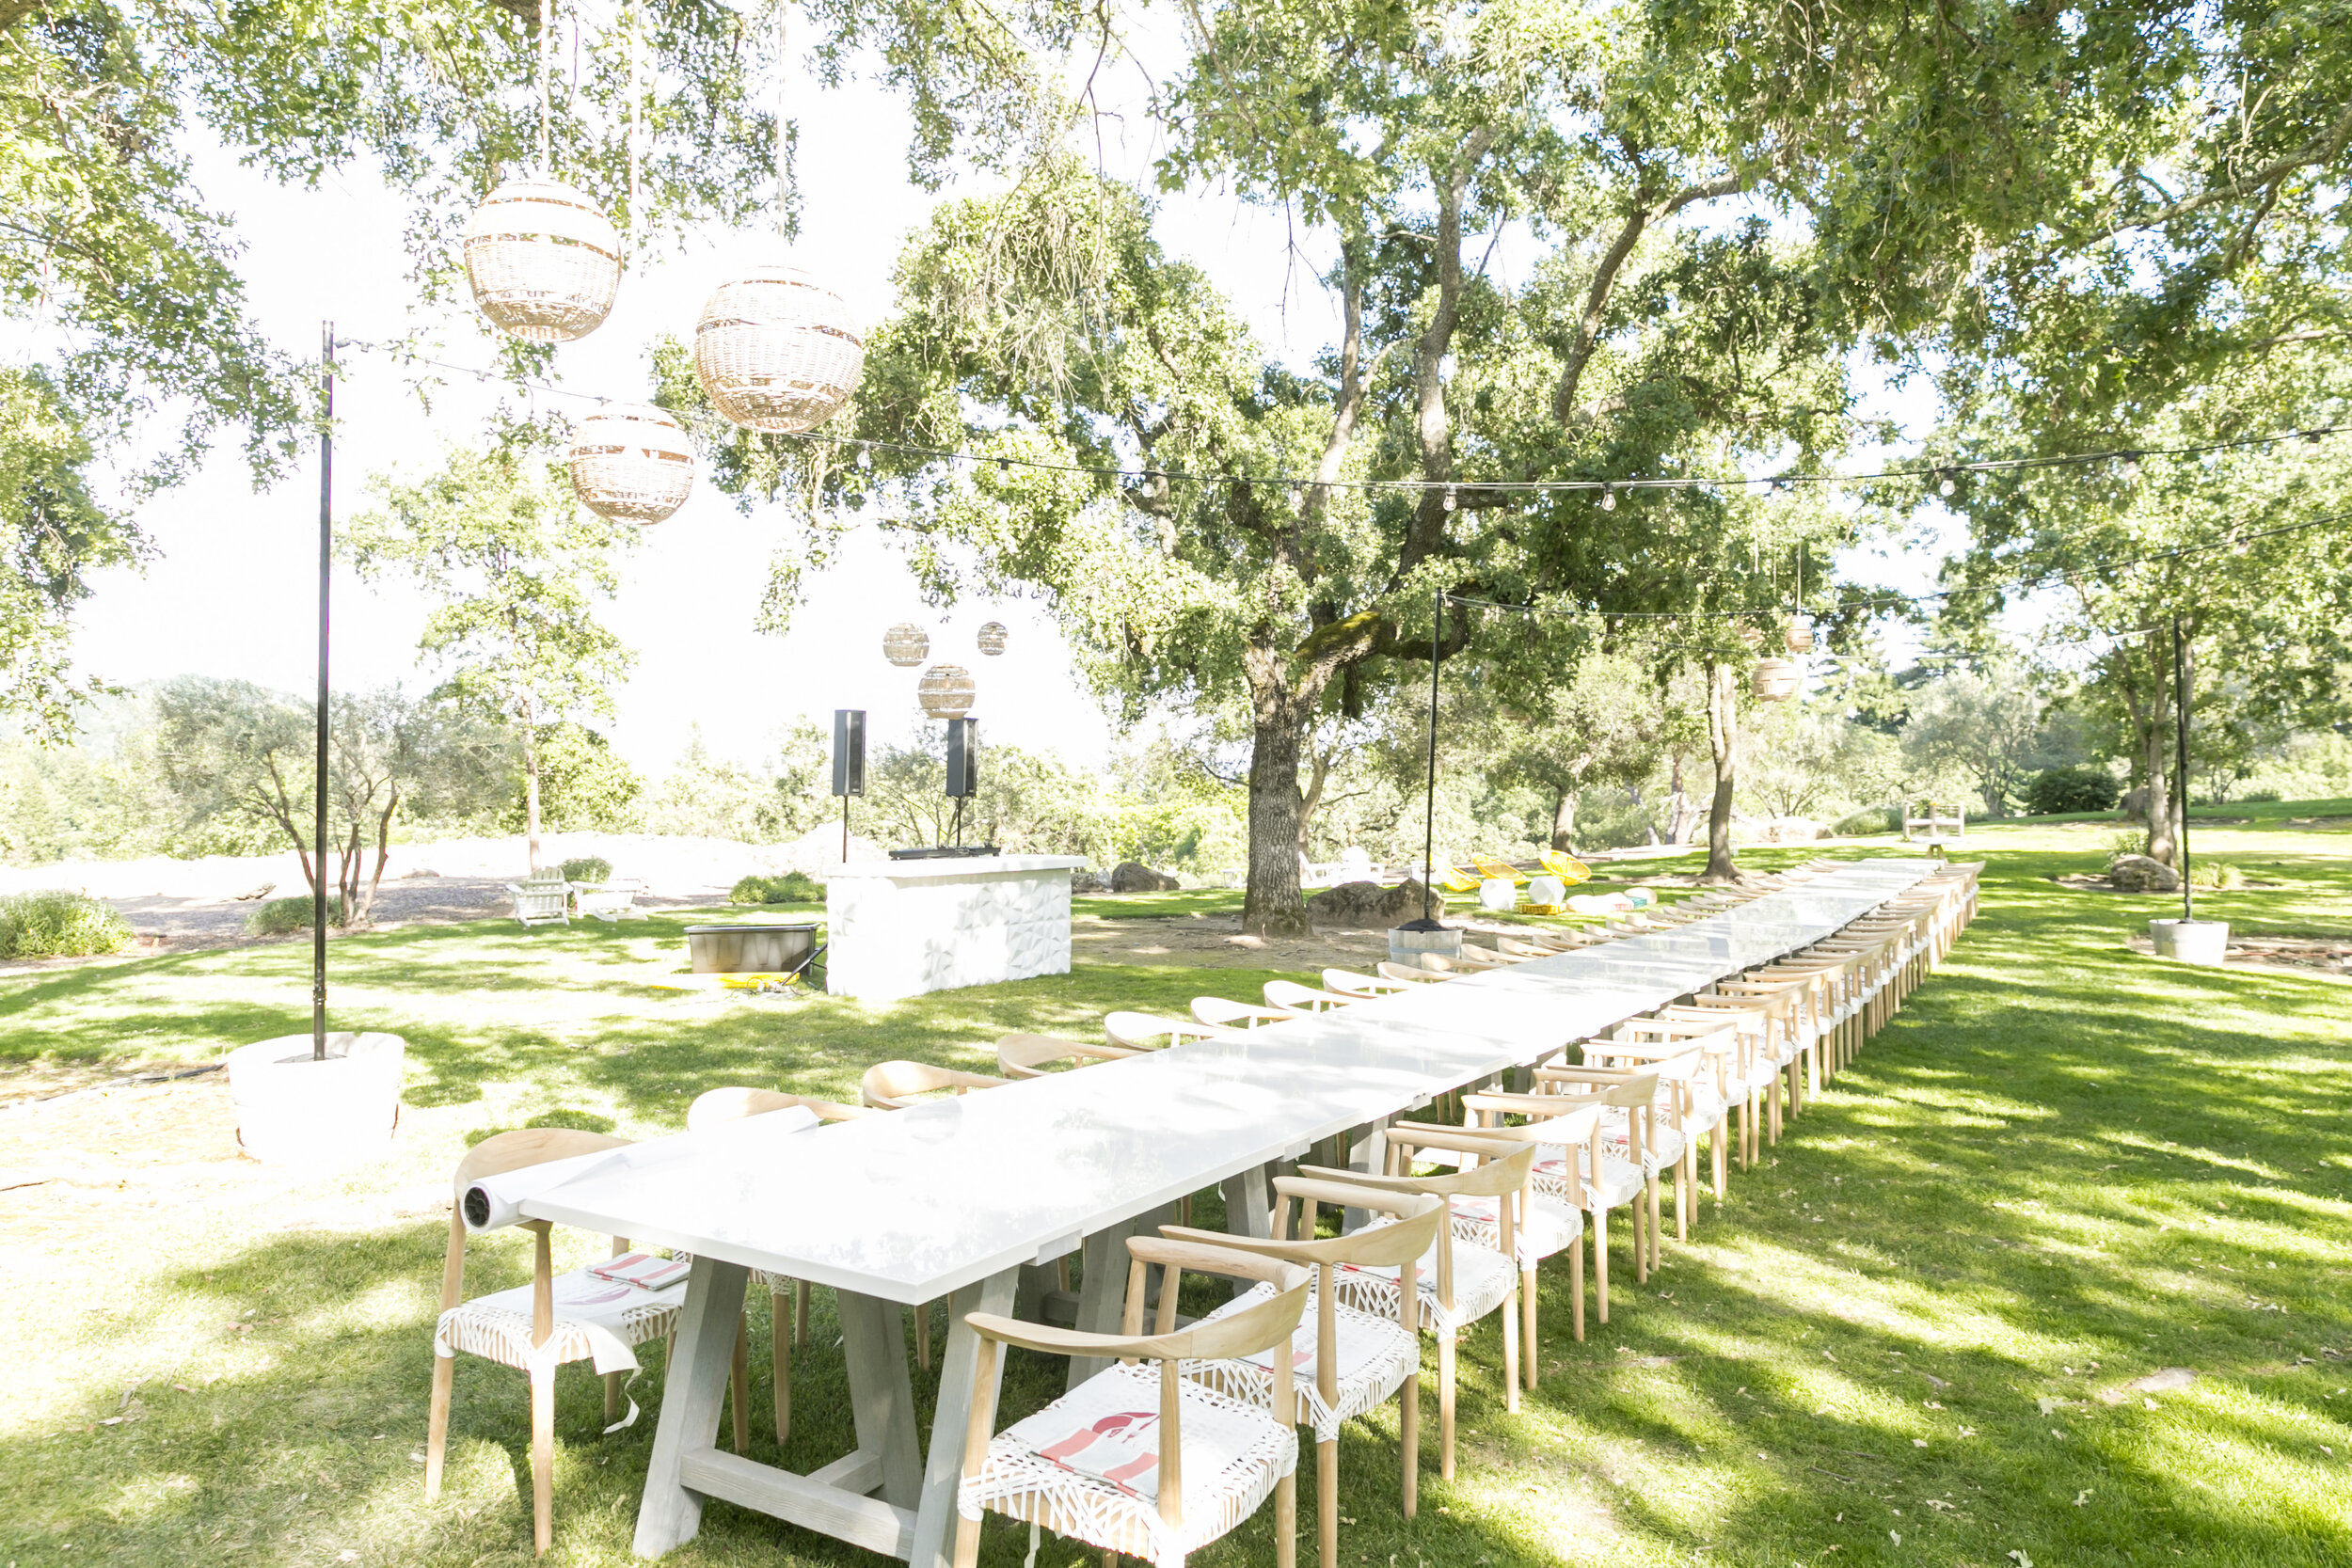 Domaine Chandon Event 6.10.19_48.jpg